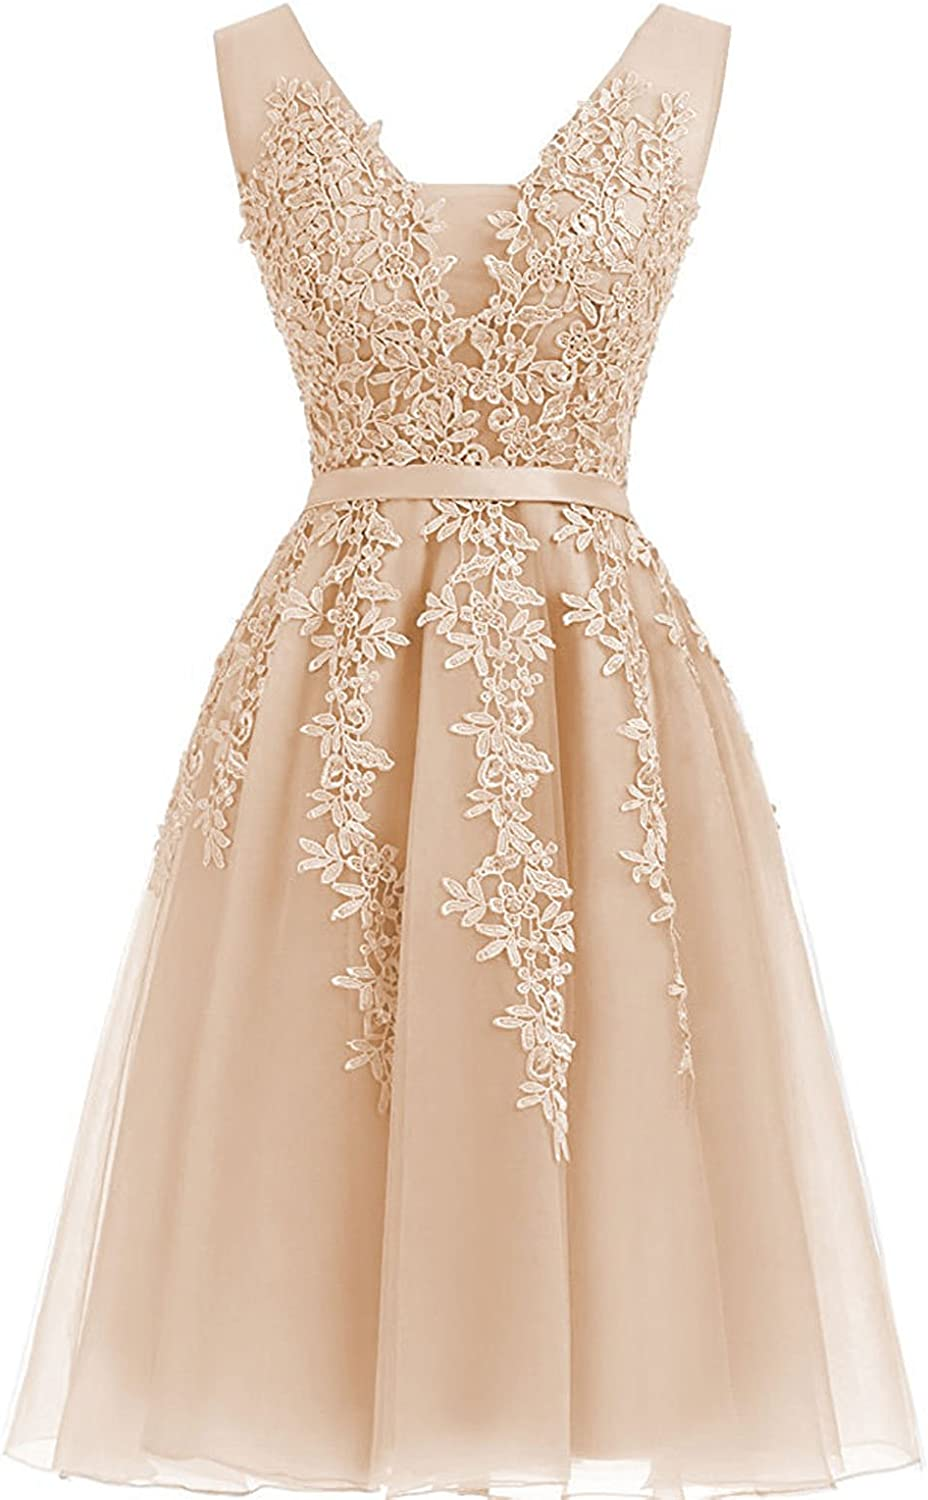 Homecoming Dresses Short Tulle Evening Prom Dress Appliques Lace Cocktail Party Gowns